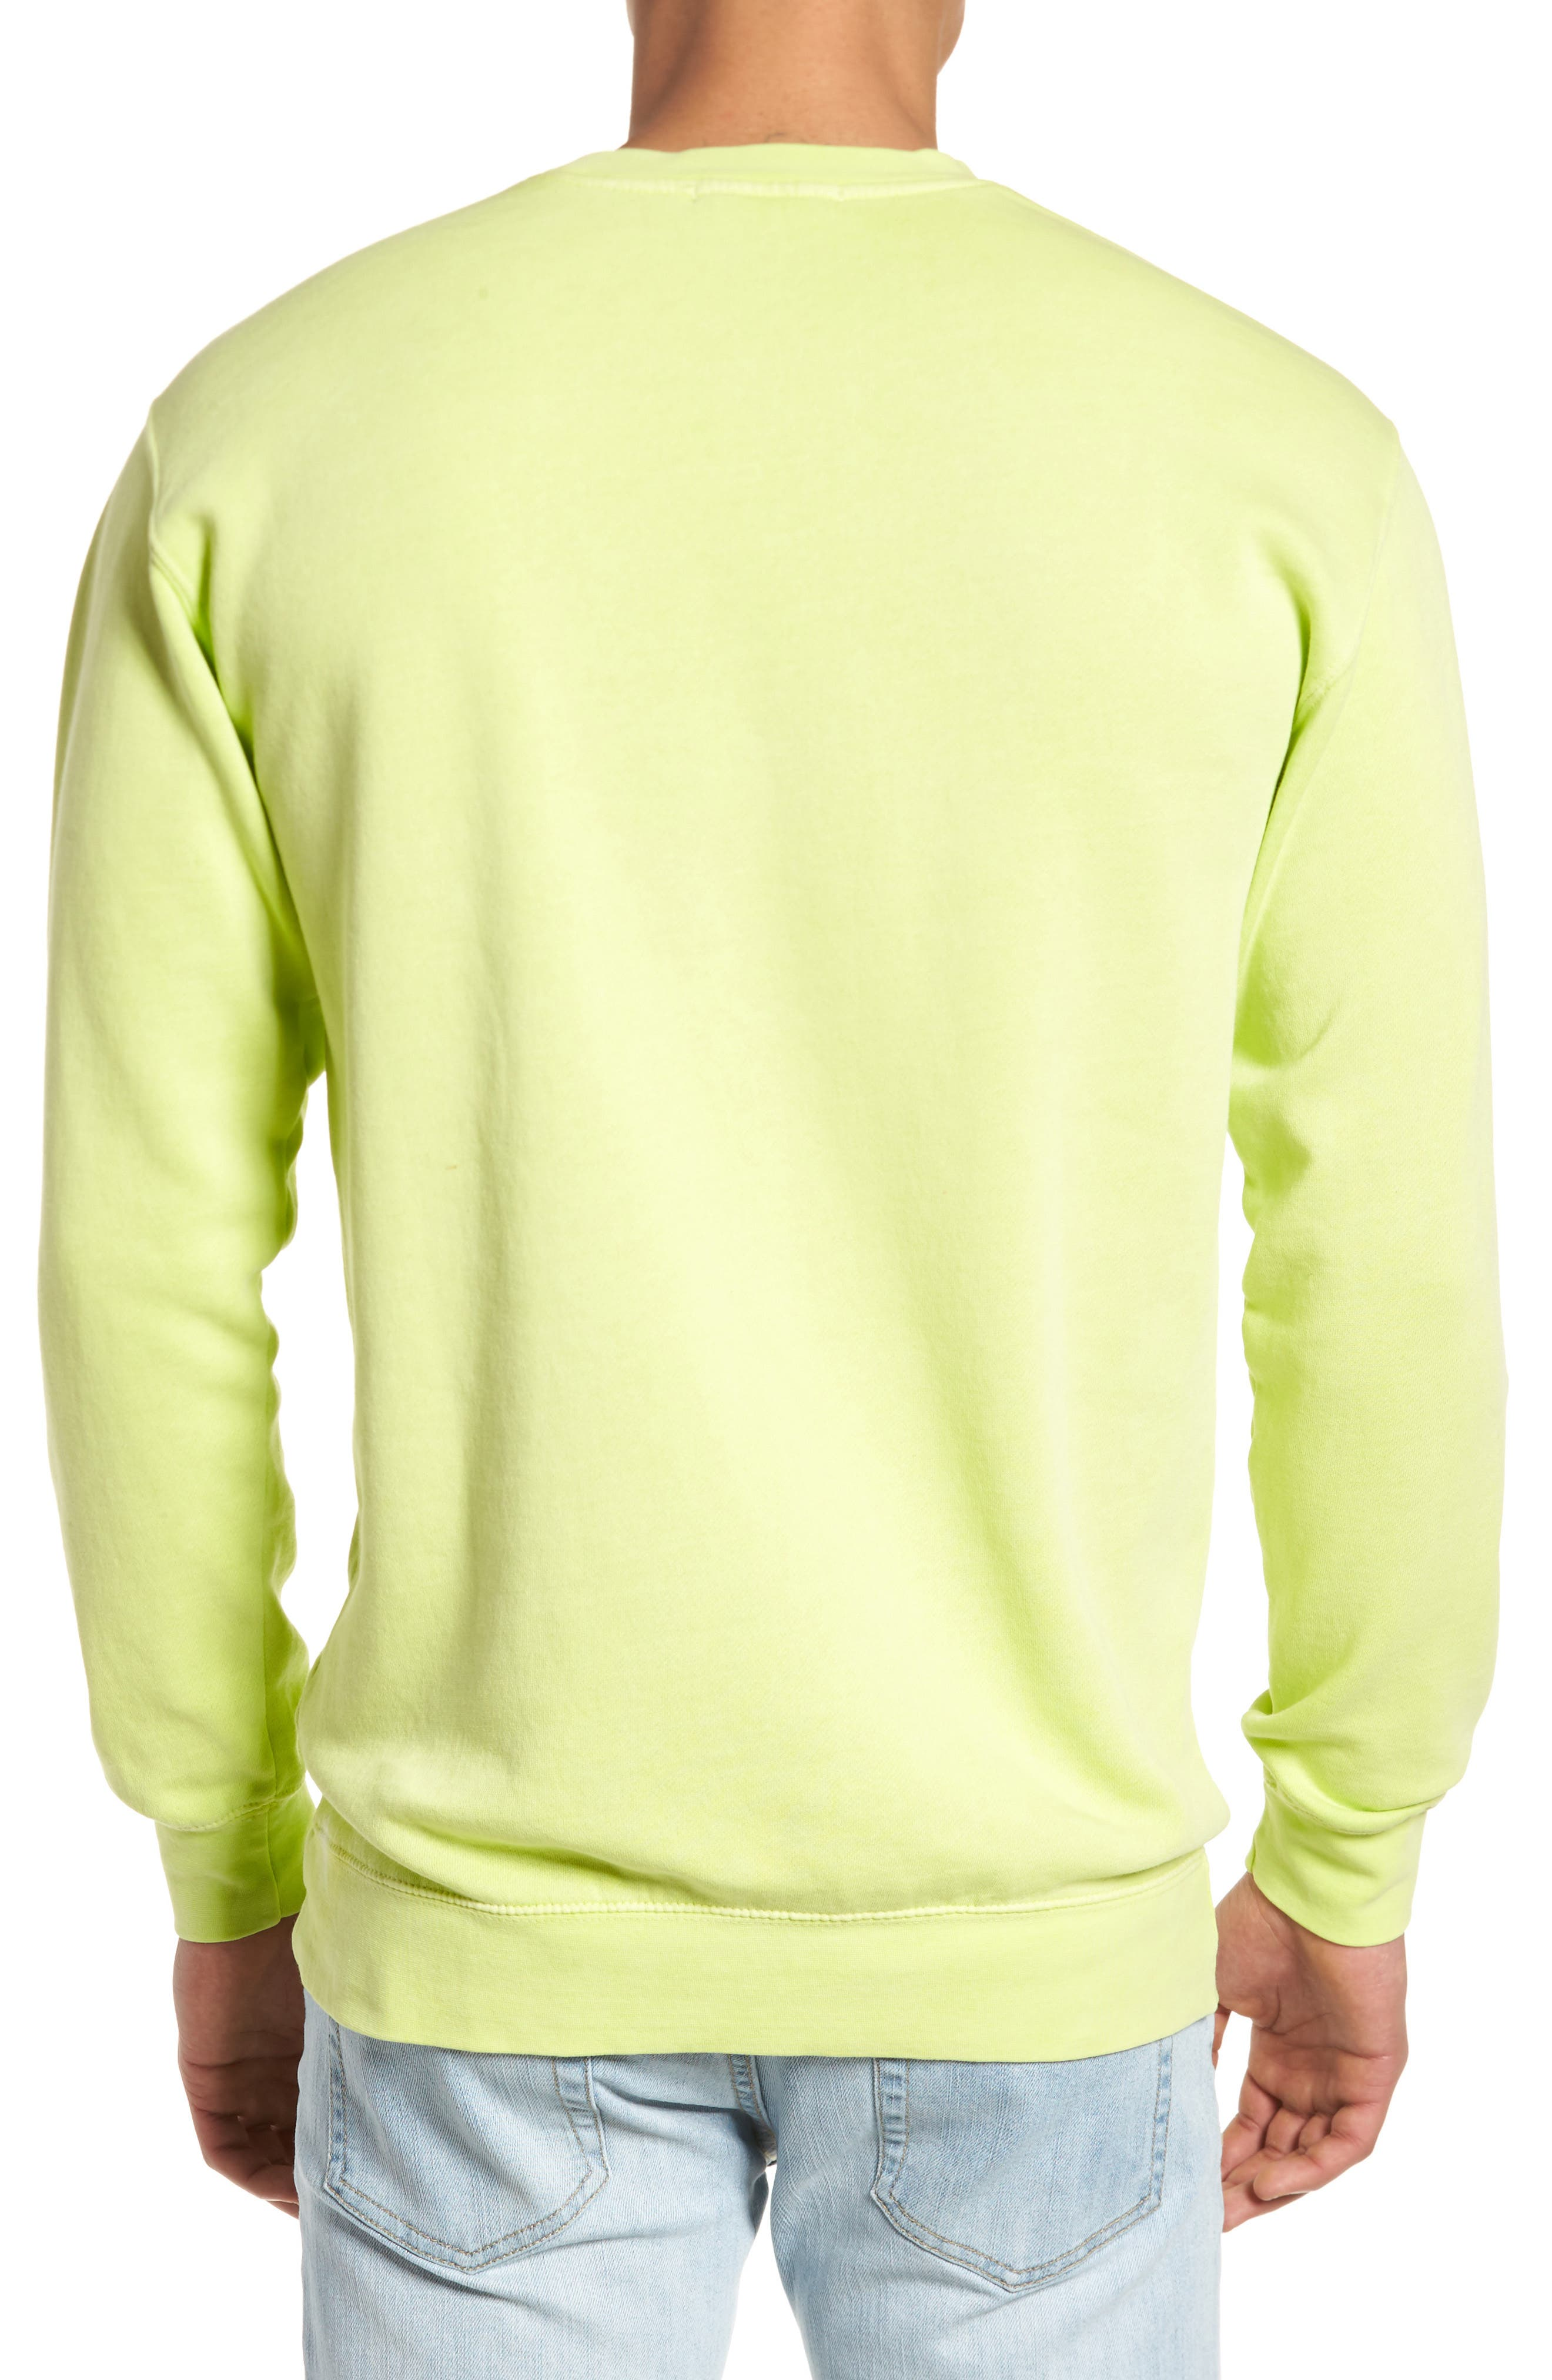 New World Sweatshirt,                             Alternate thumbnail 2, color,                             323